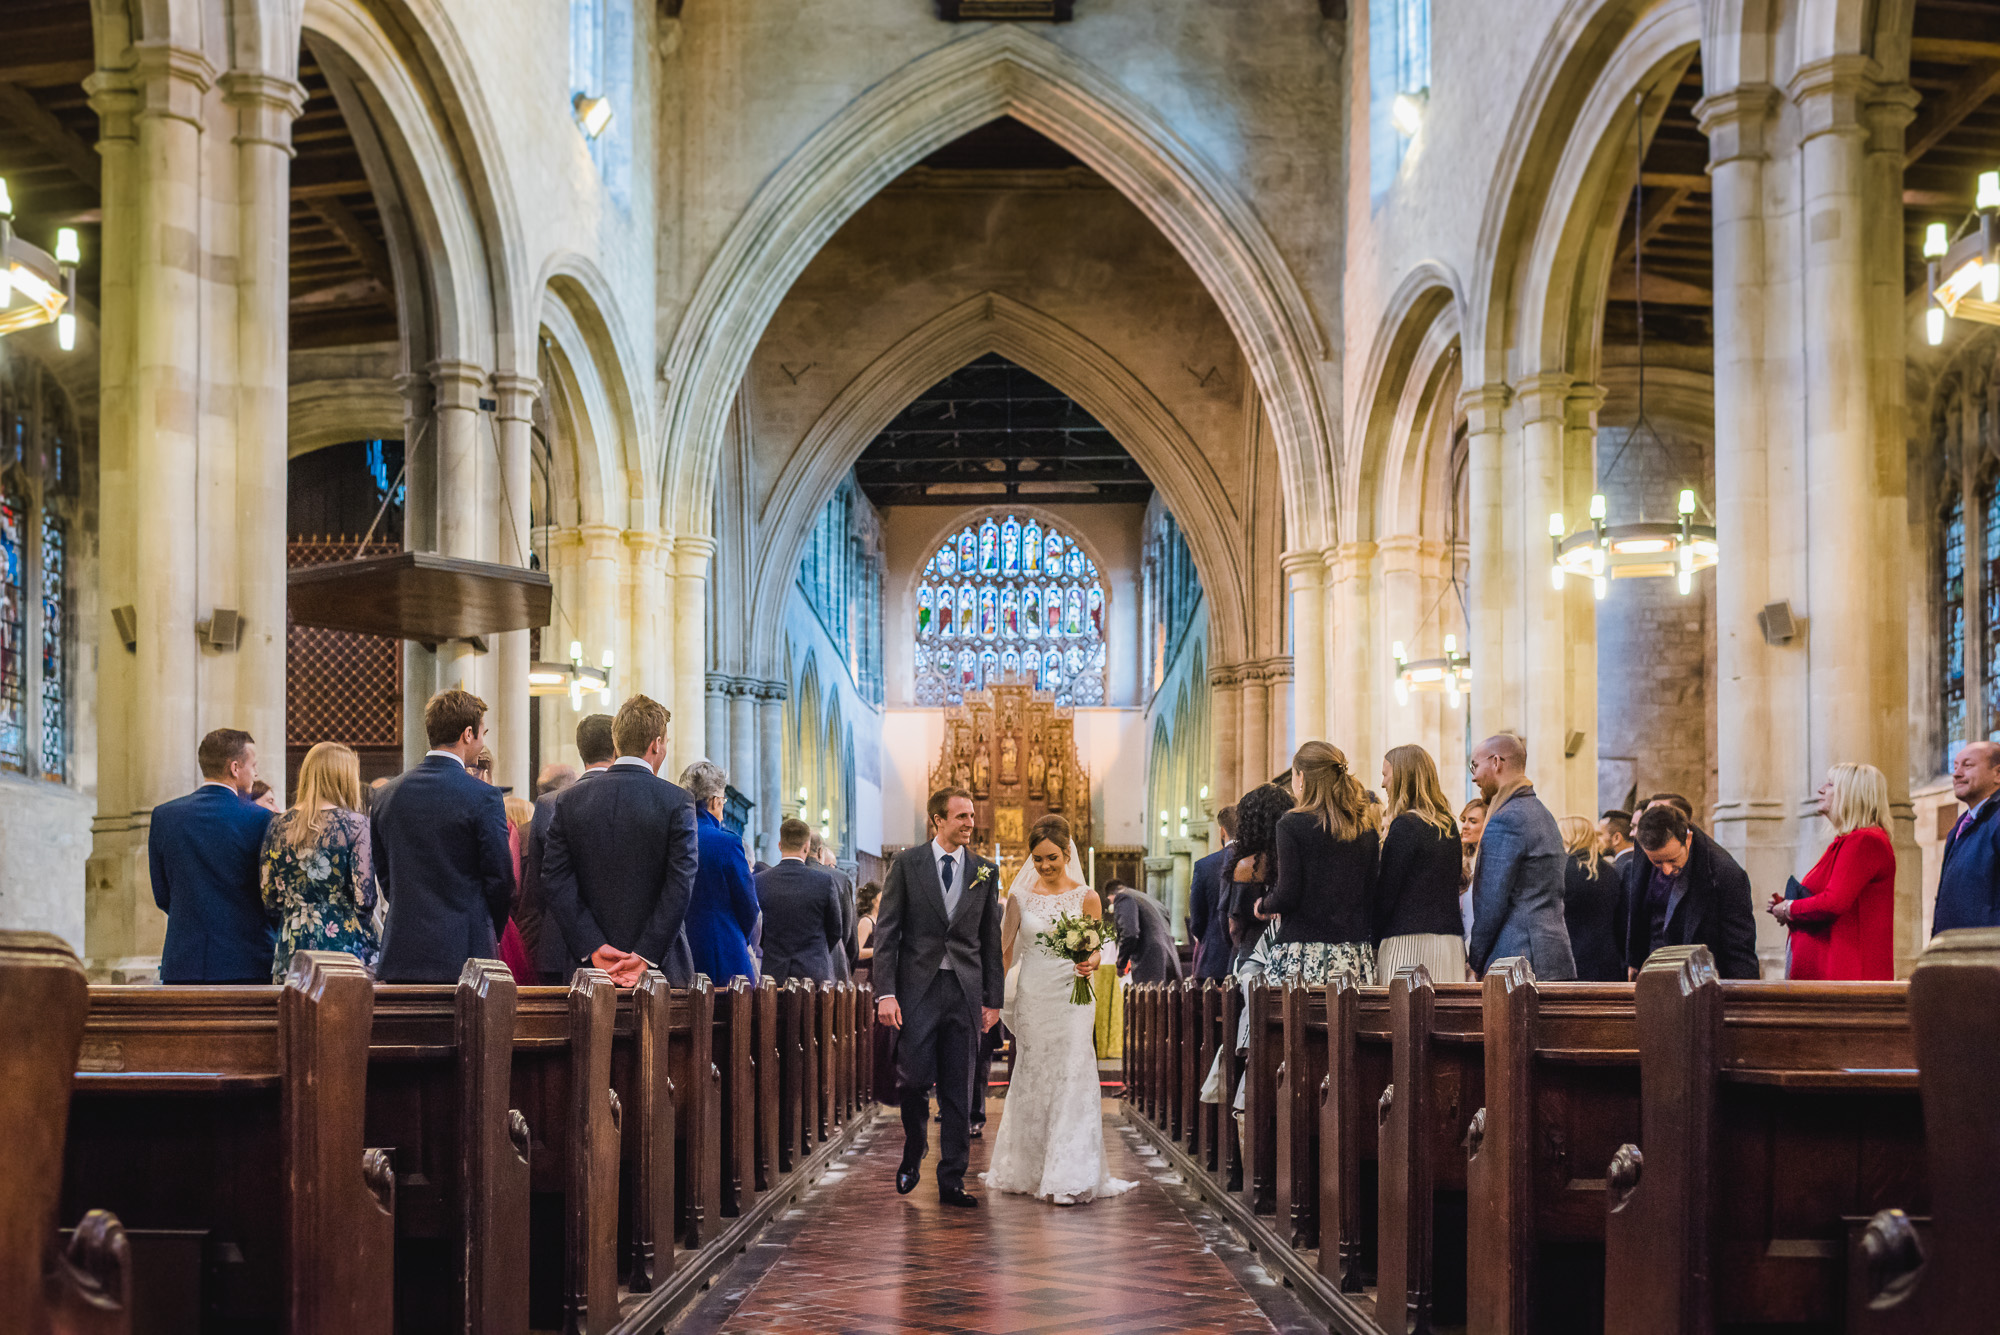 If You Re Looking For King S Lynn Wedding Photography It D Be Great To Hear From